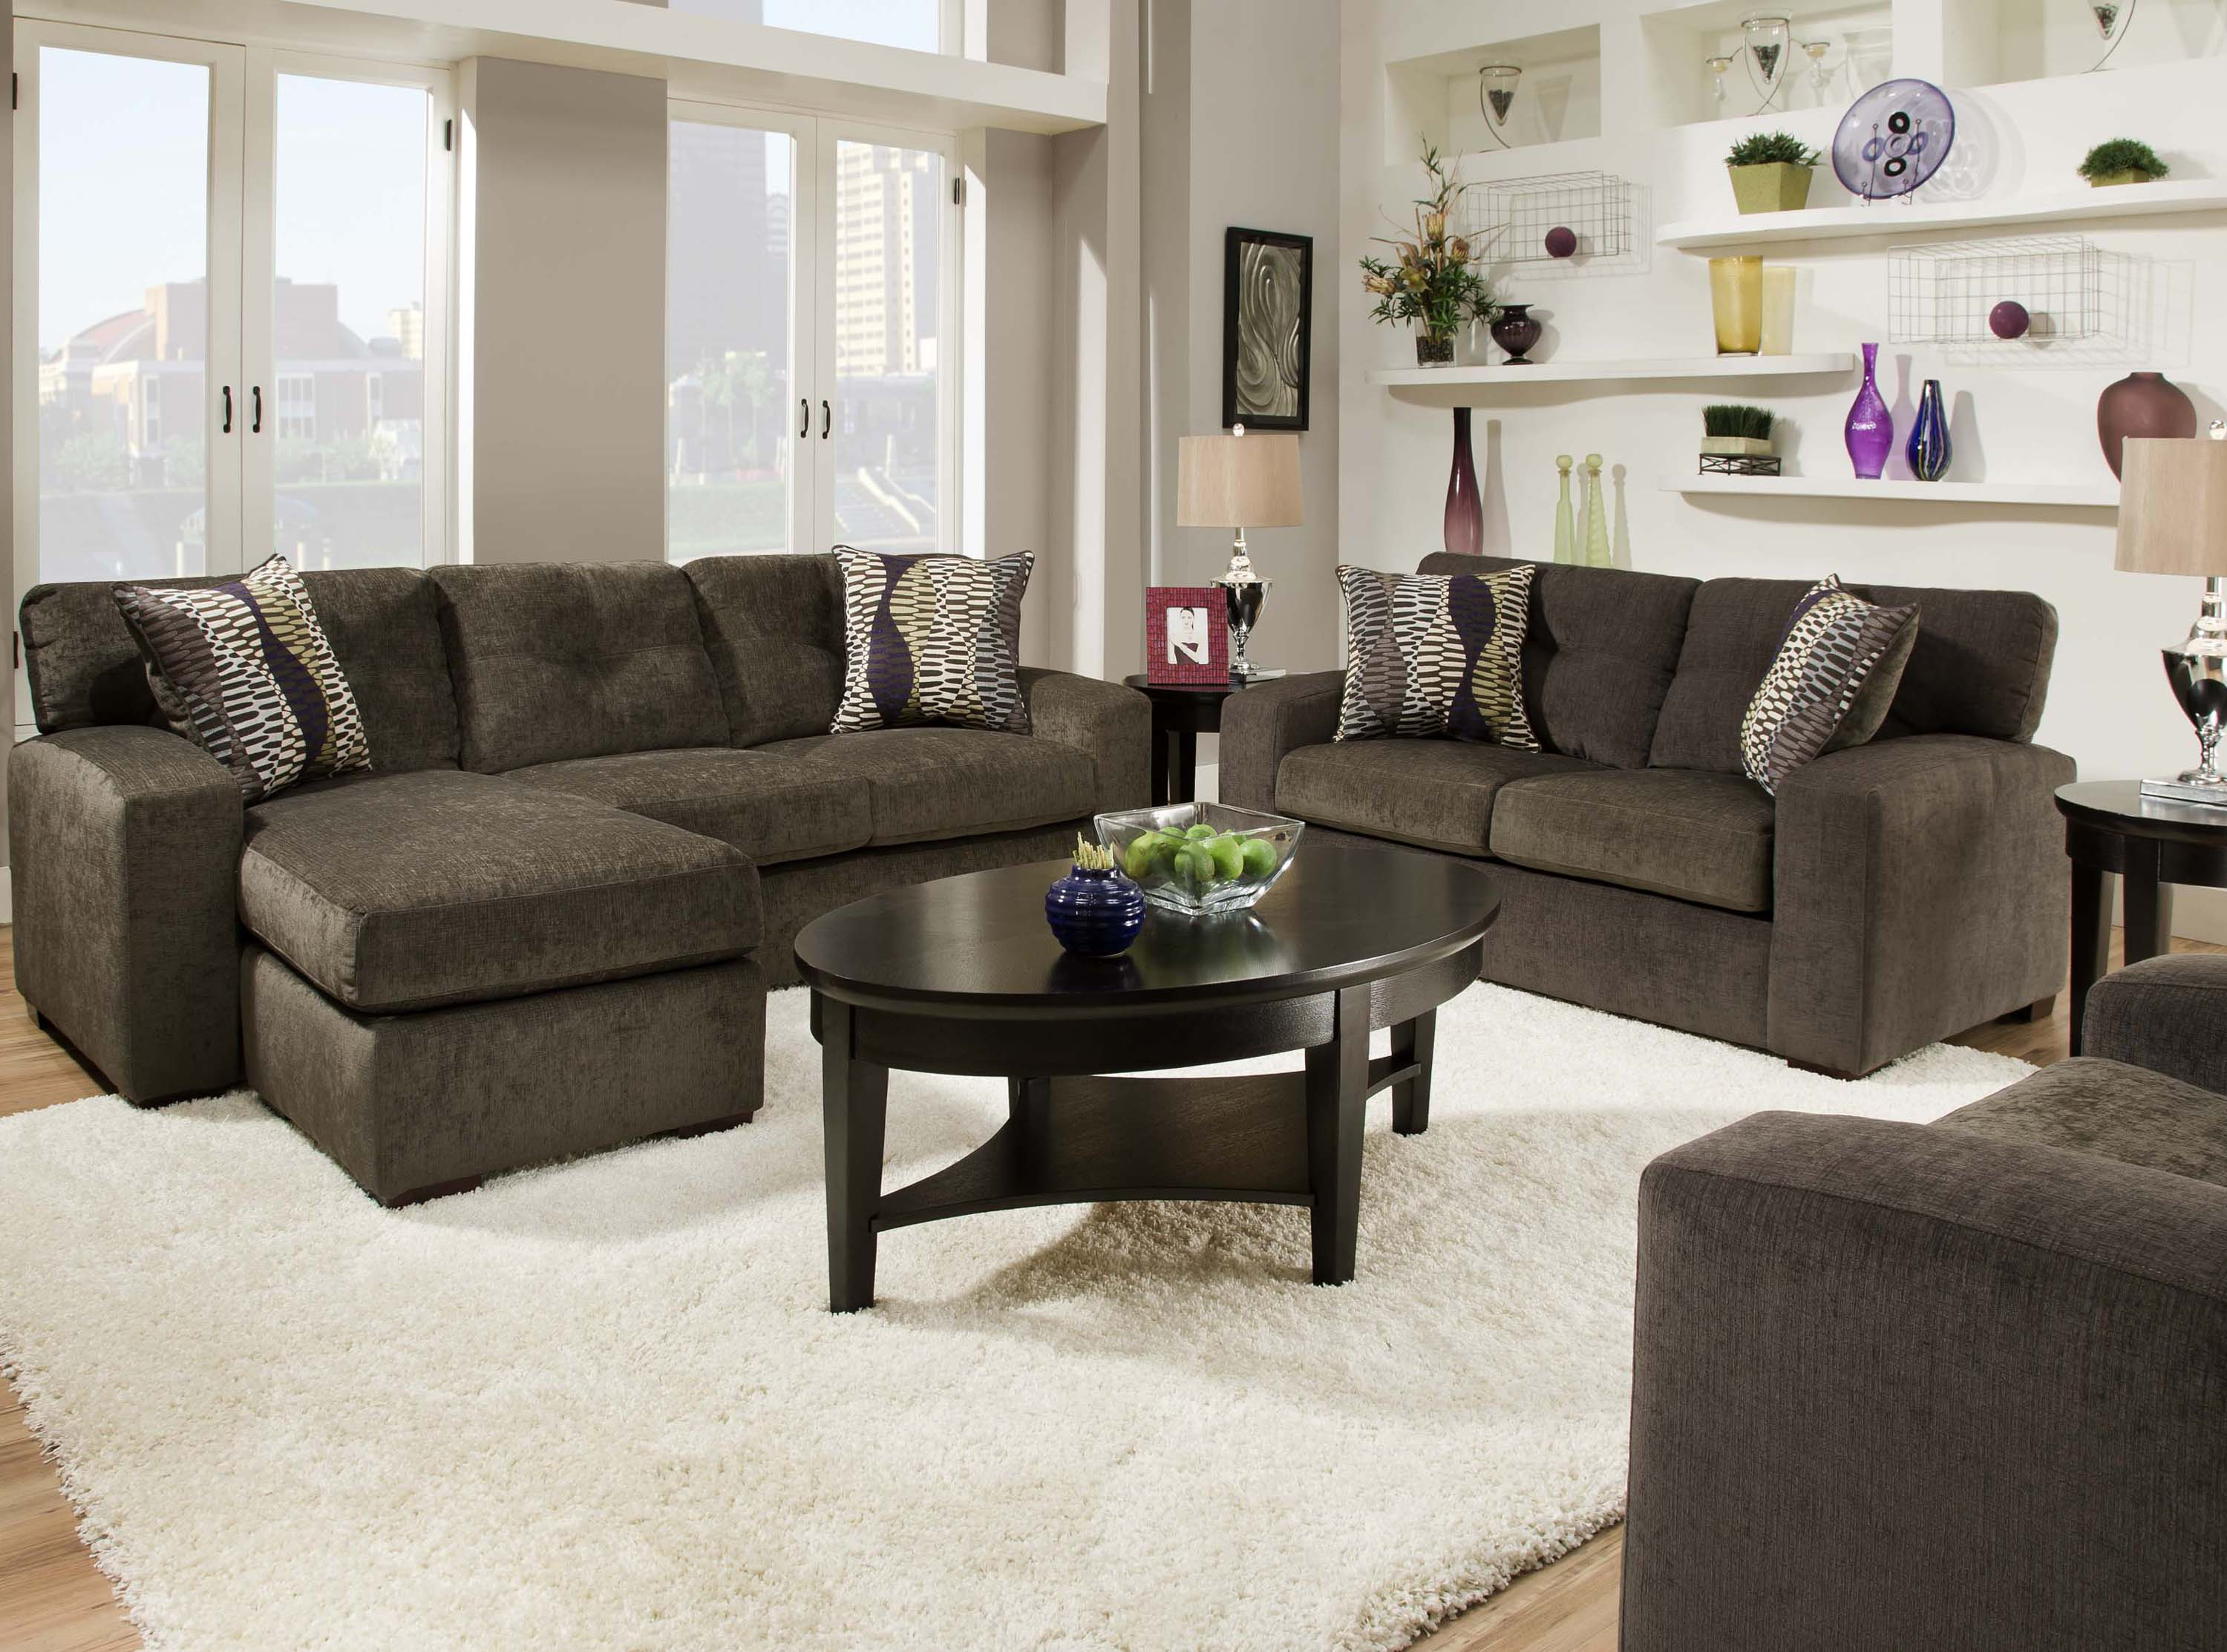 Inspiring contemporary sofas with various styles housebeauty - Gray modern living room furniture ...